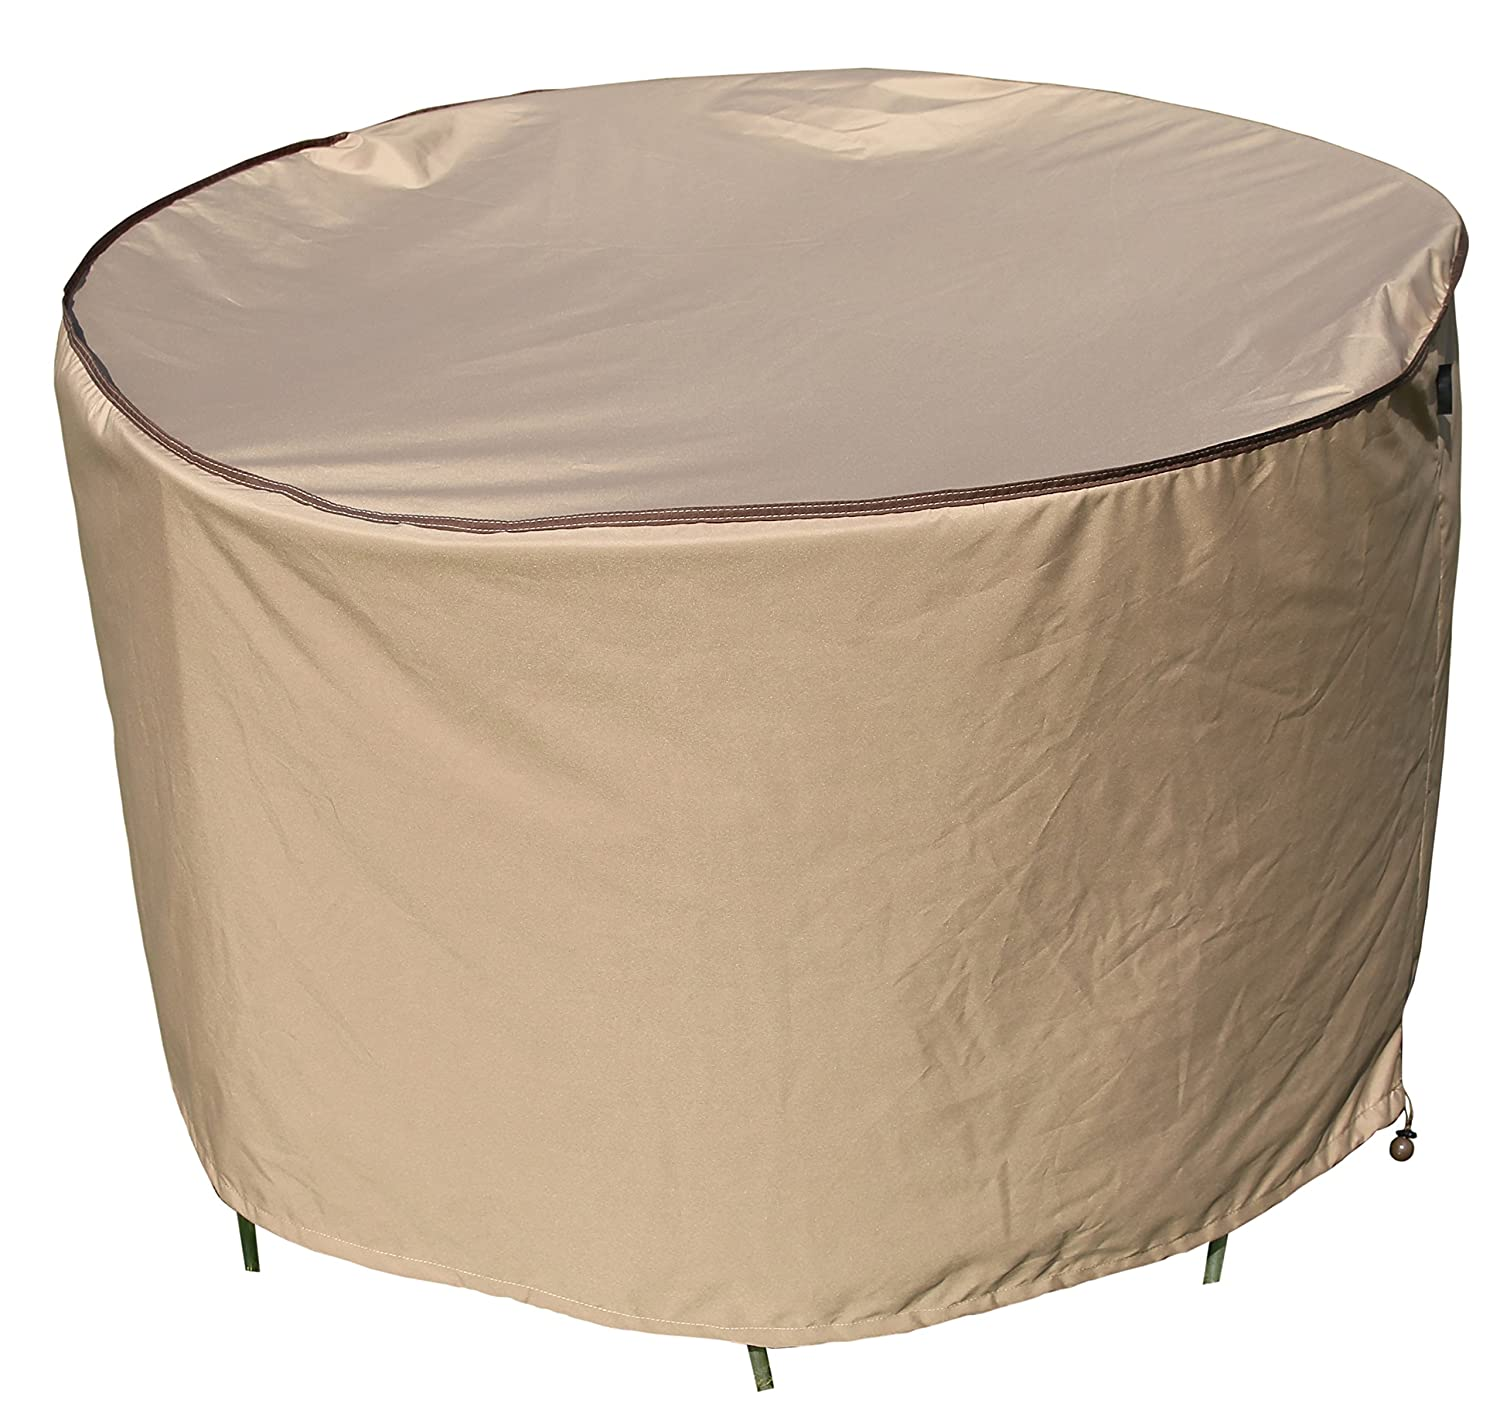 SORARA Round Table and Chair Set Cover Outdoor Porch Furniture Cover, Water Proof, All Weather Protection, 60 Dia.